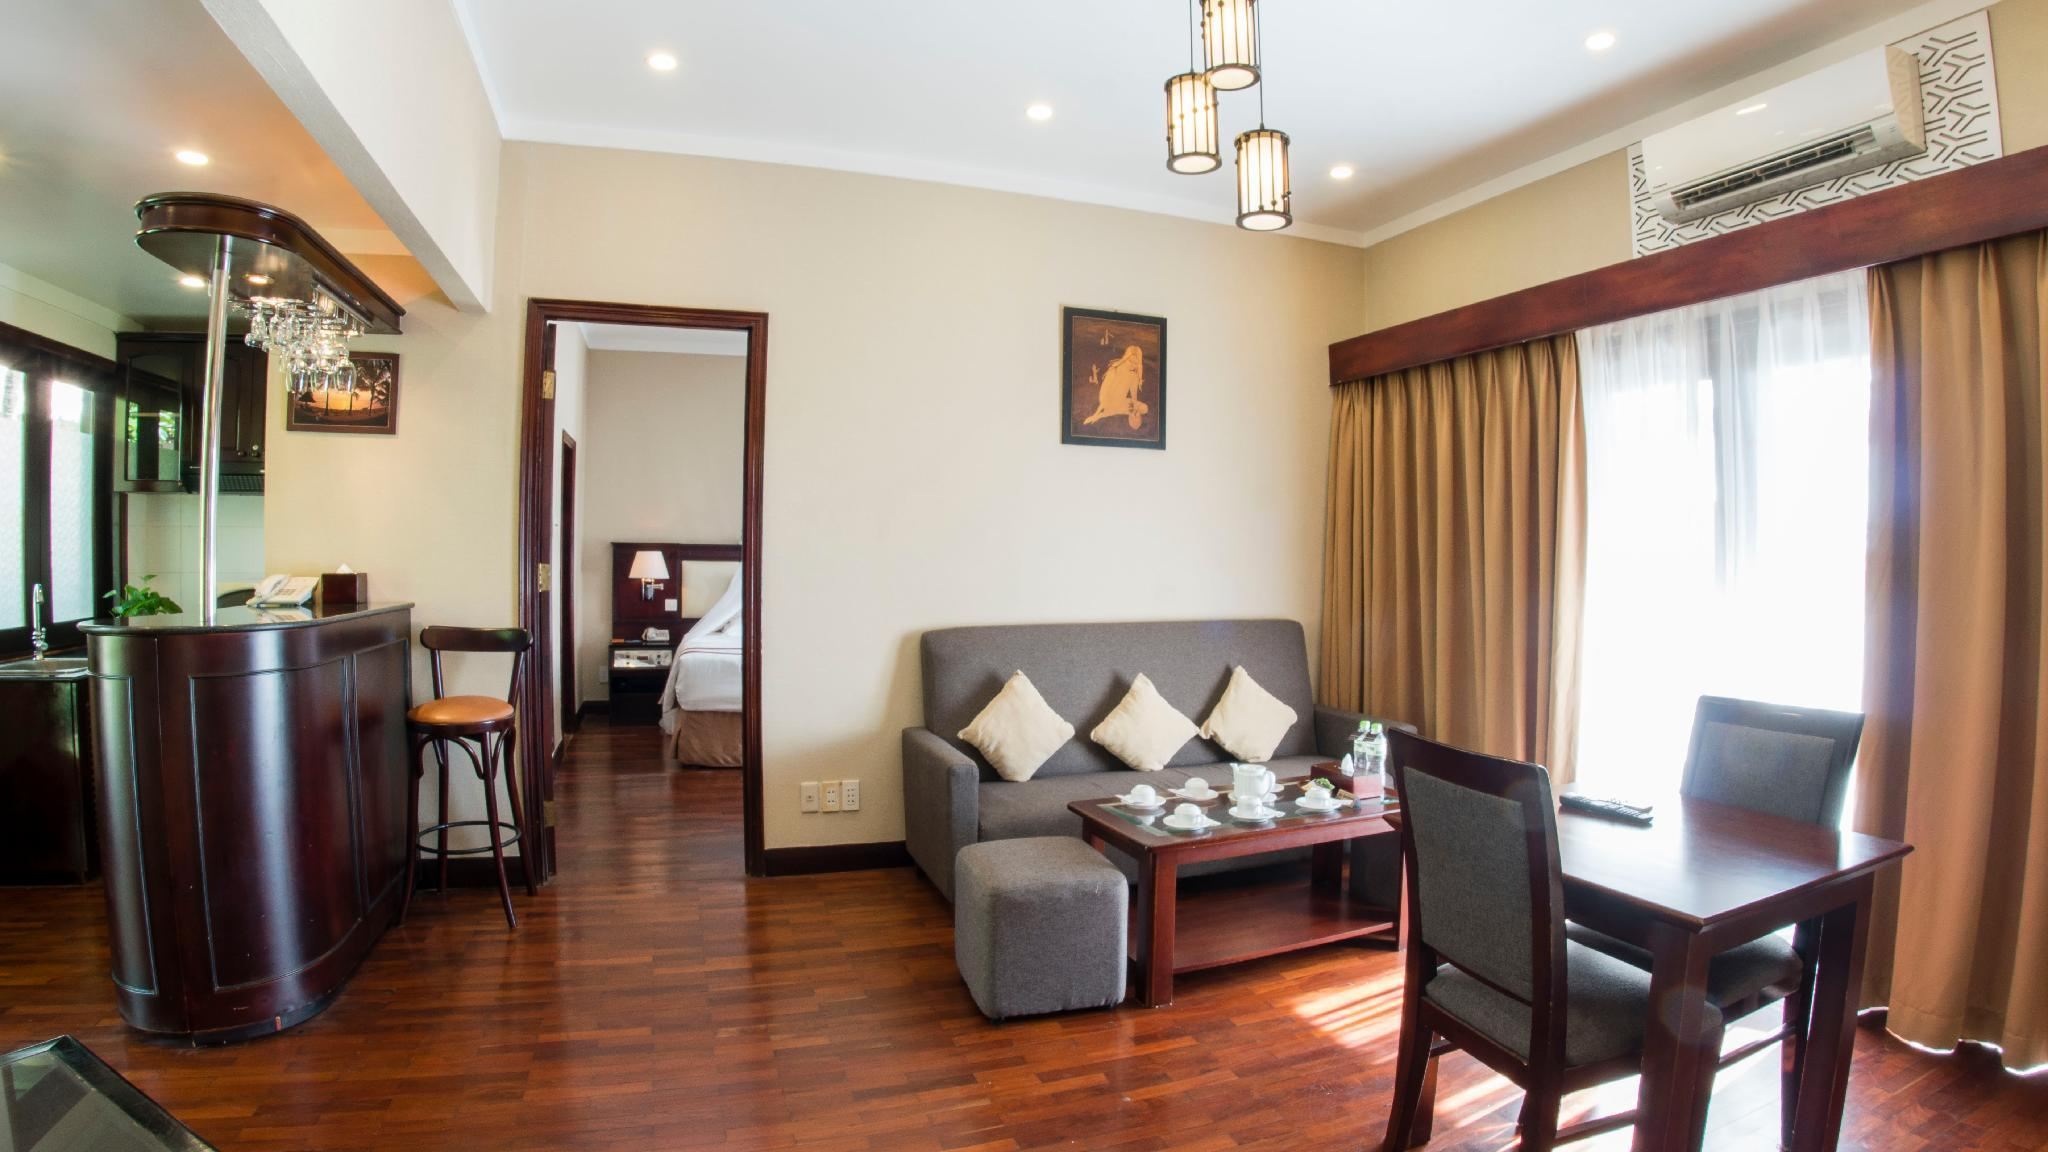 Phòng Suite 2 phòng ngủ Hướng biển (2 Bedroom Suite Sea View)